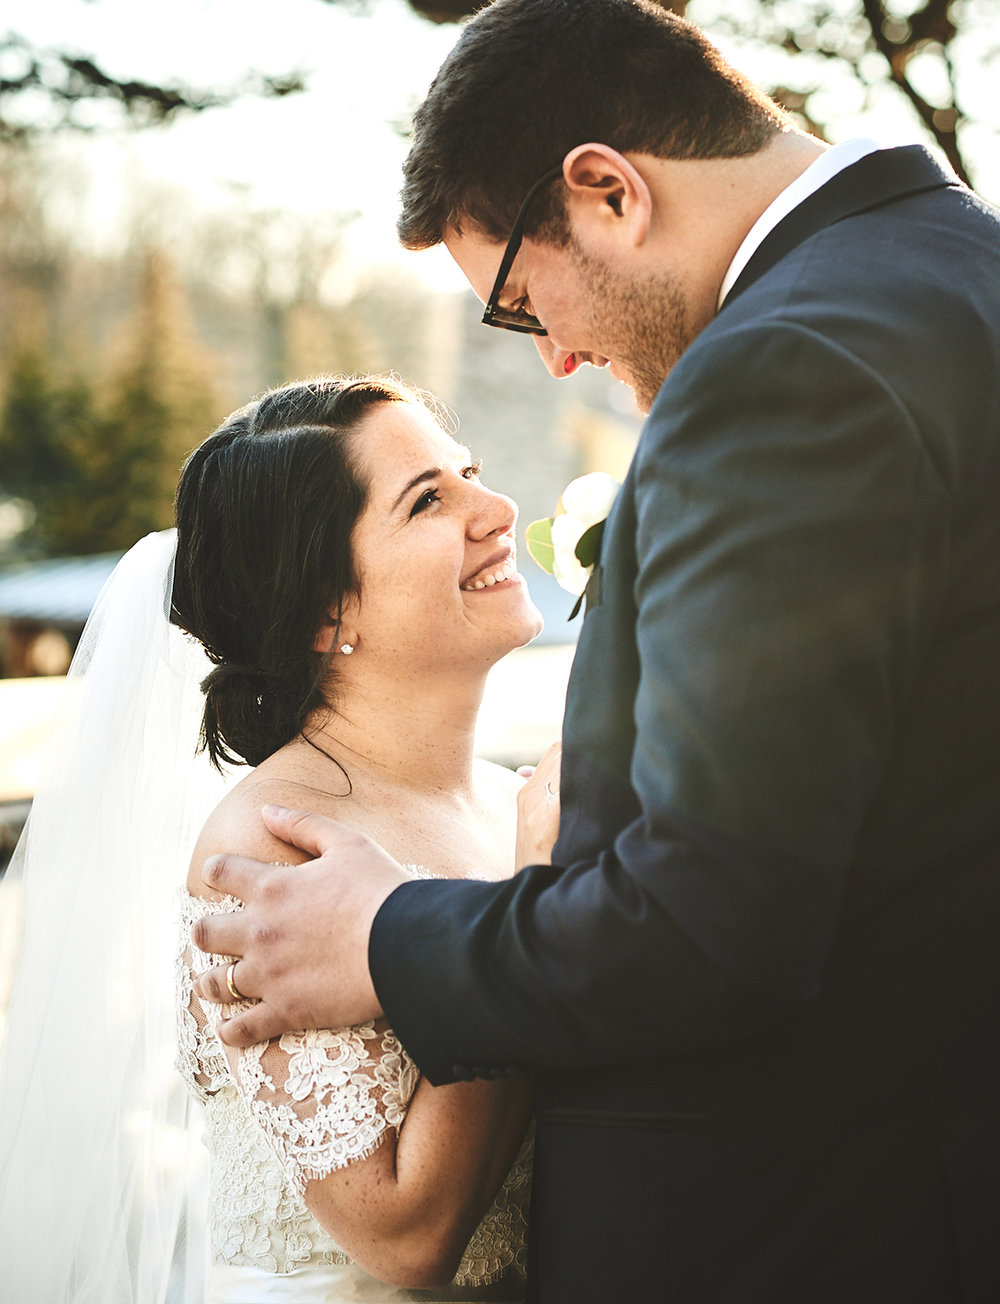 180324_StonehouseatStirlingRidgeWeddingPhotography_NJWeddingPhotographer_By_BriJohnsonWeddings_0127.jpg